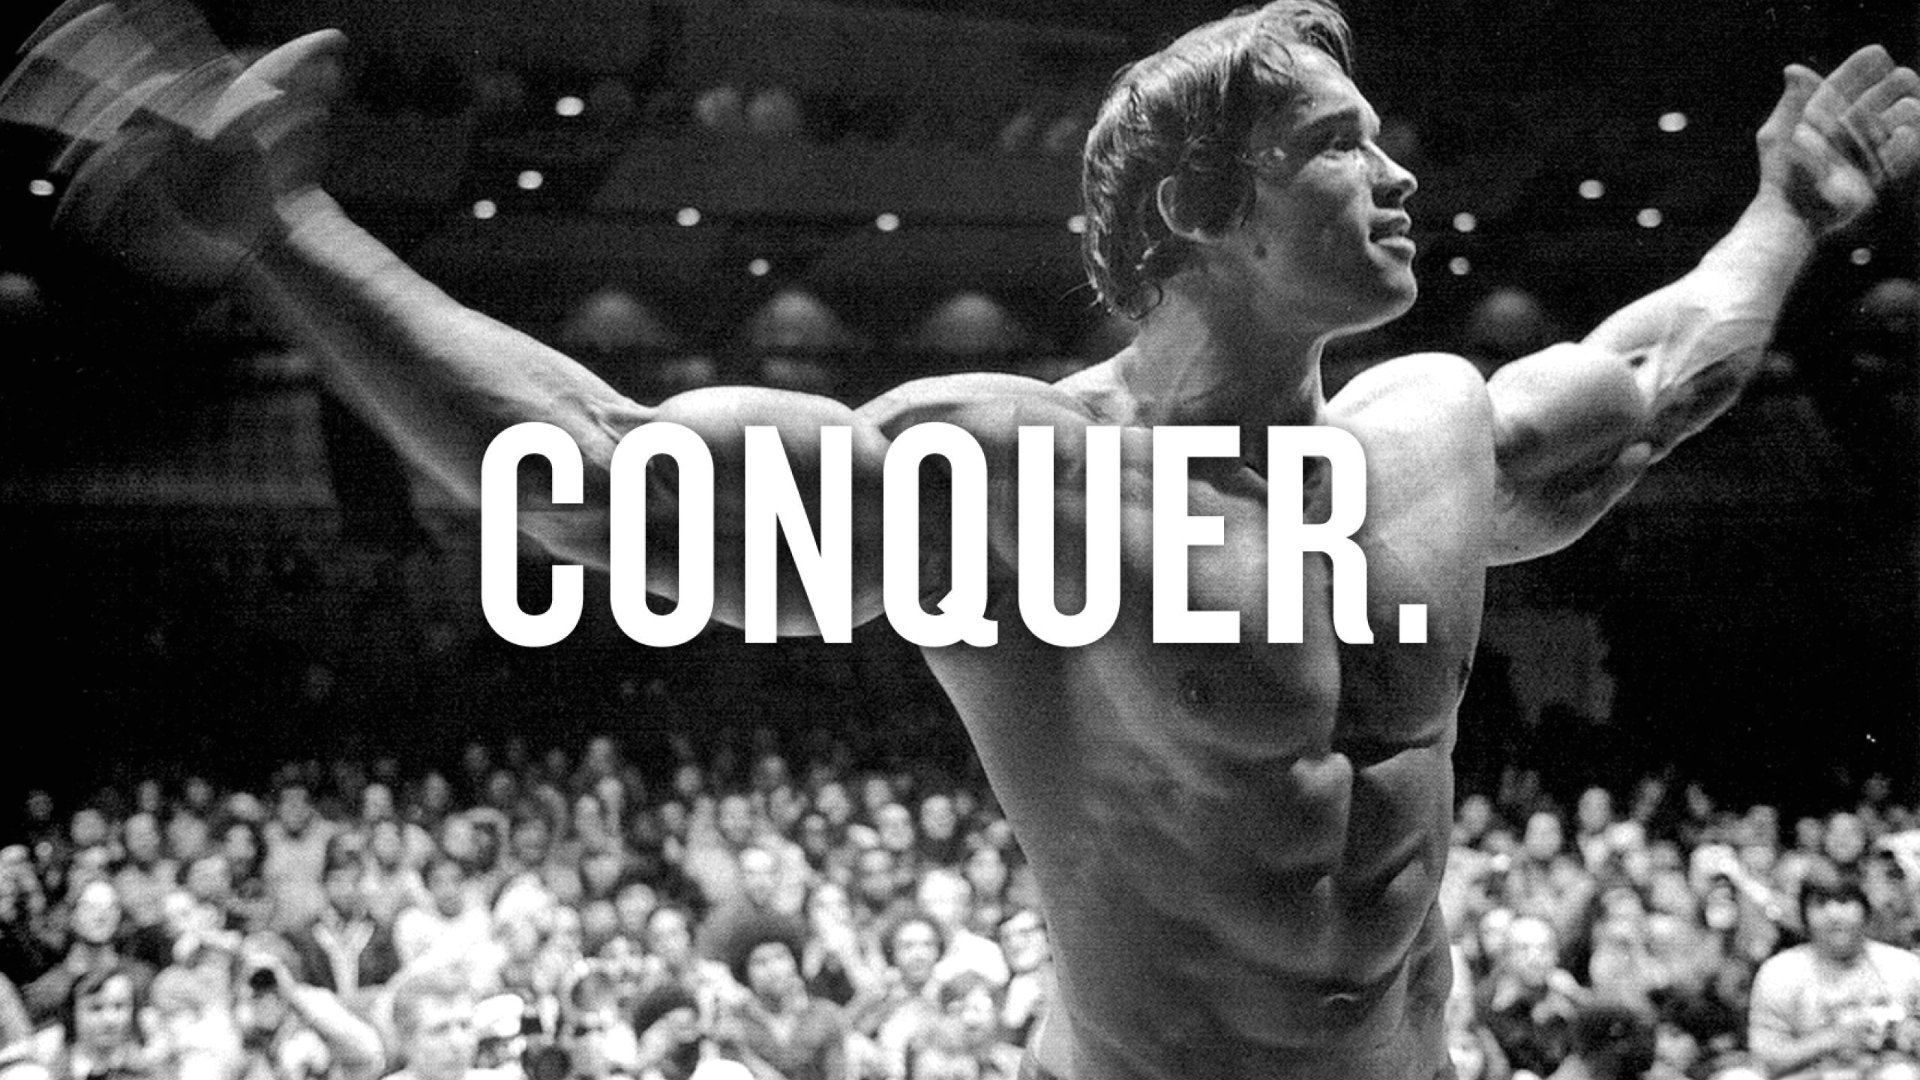 Bodybuilding Quotes Awesome Top 10 Motivational Quotesfamous Bodybuilders  Generation